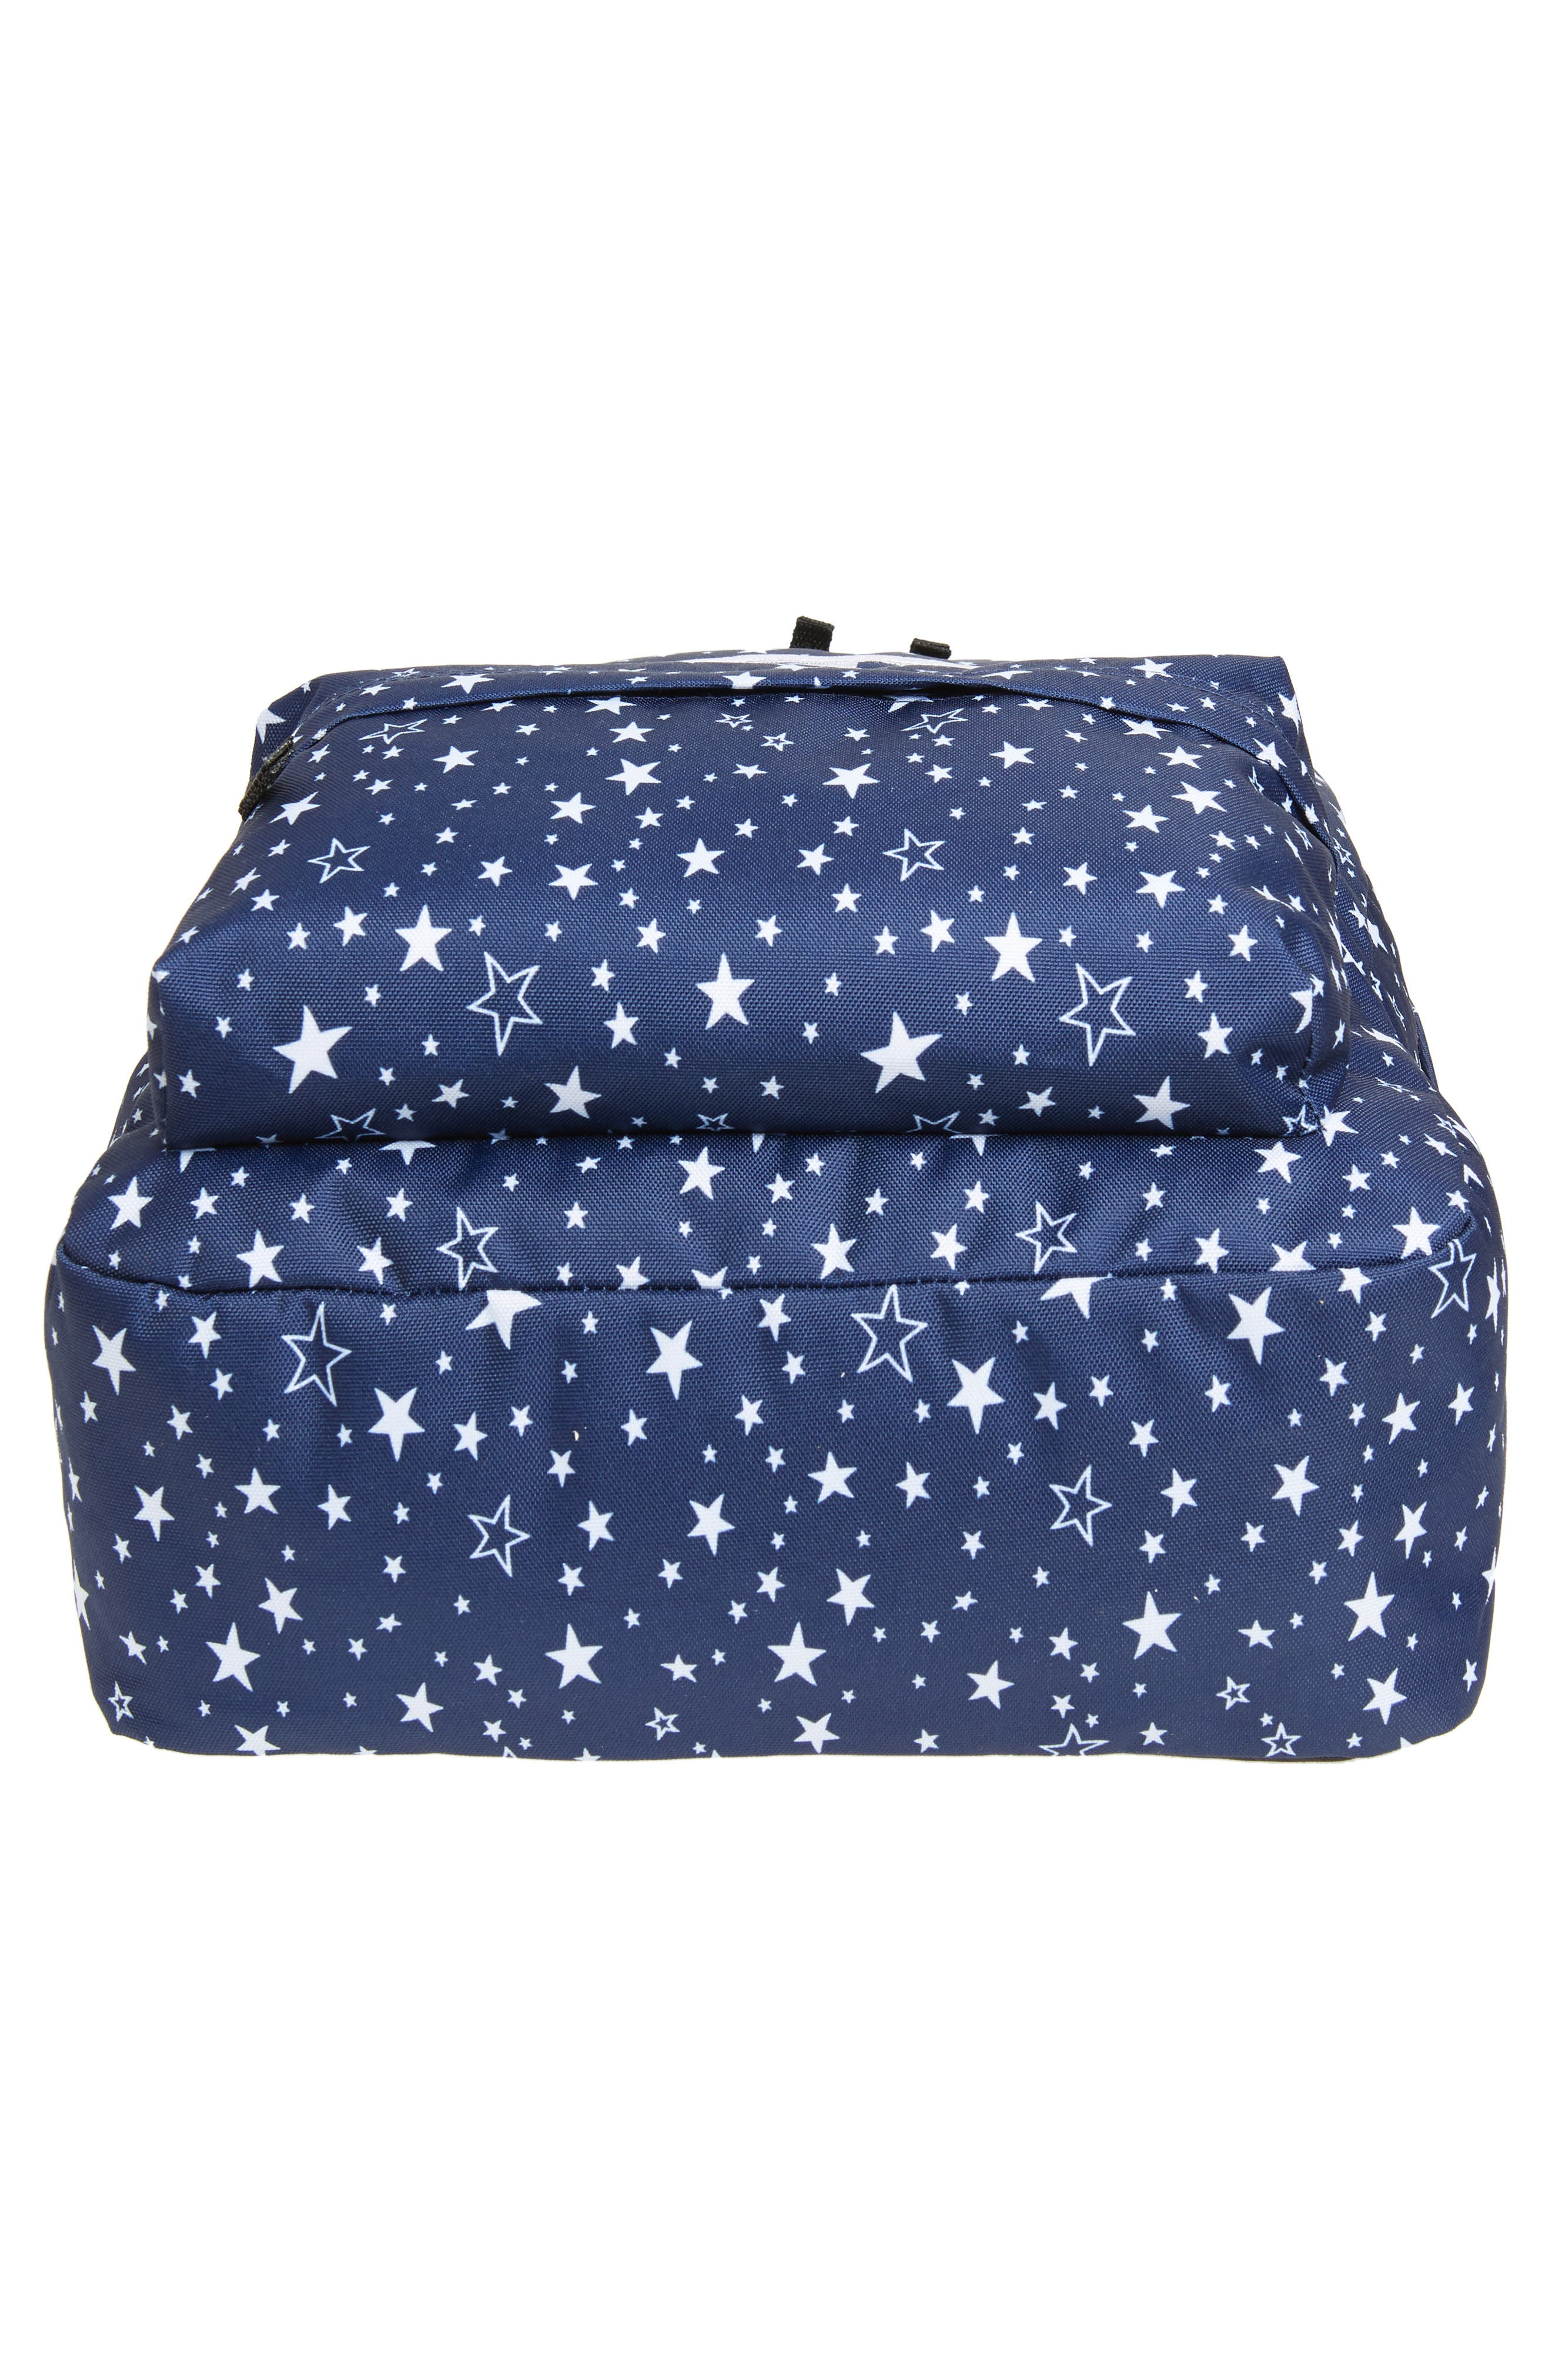 Realm Backpack,                             Alternate thumbnail 6, color,                             MEDIEVAL BLUE STAR